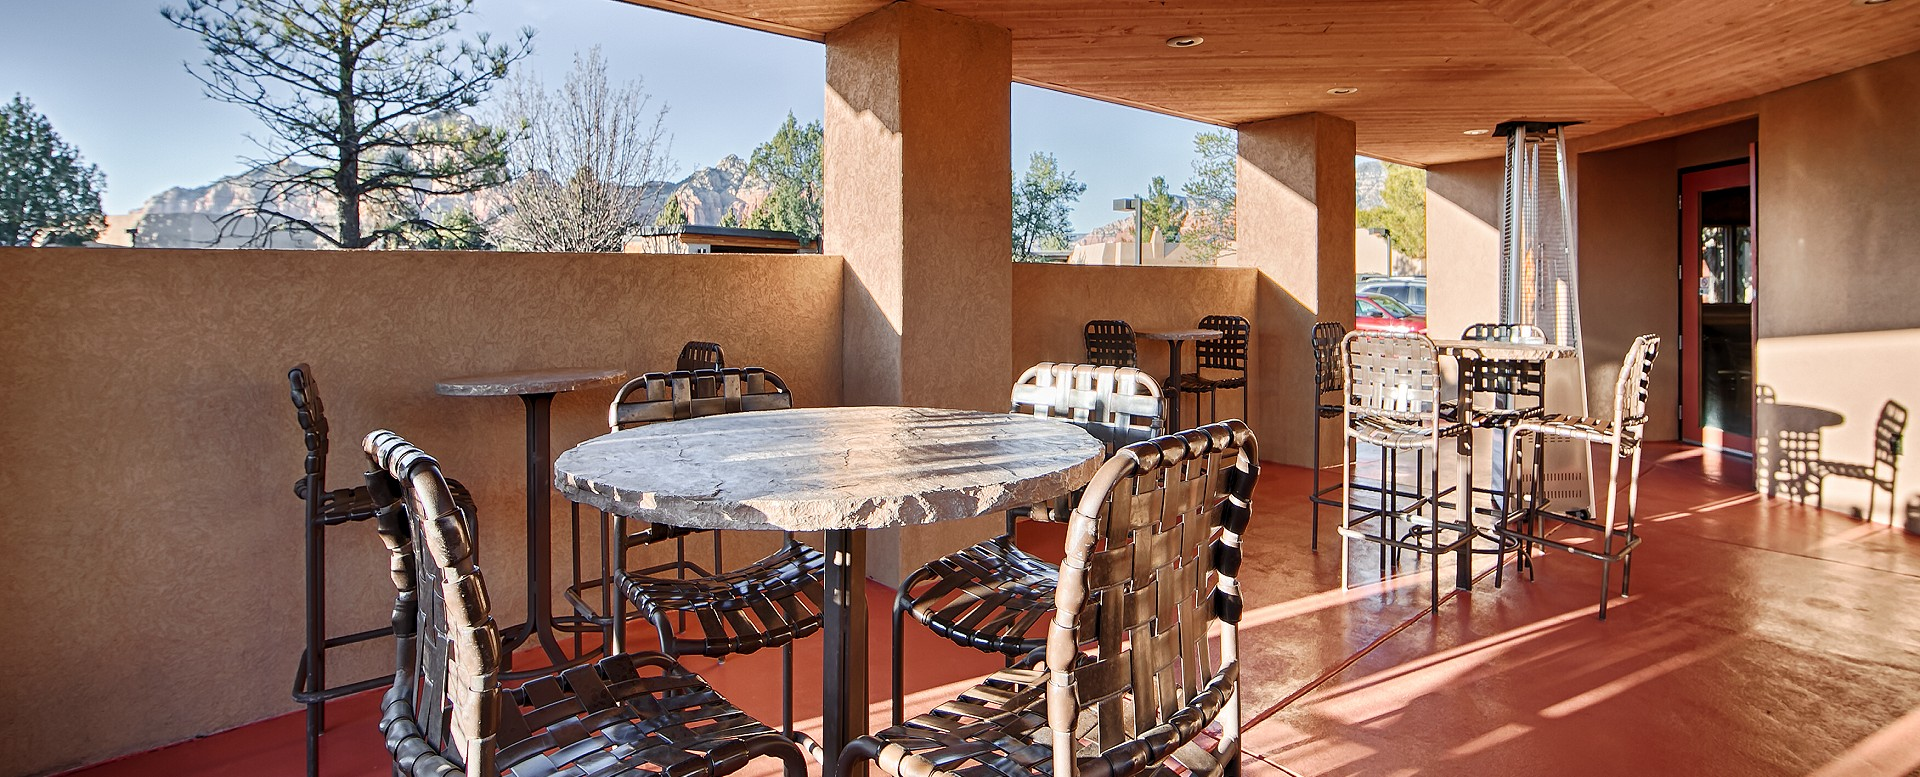 Best Western Plus Inn of Sedona-Outdoor Dining Area